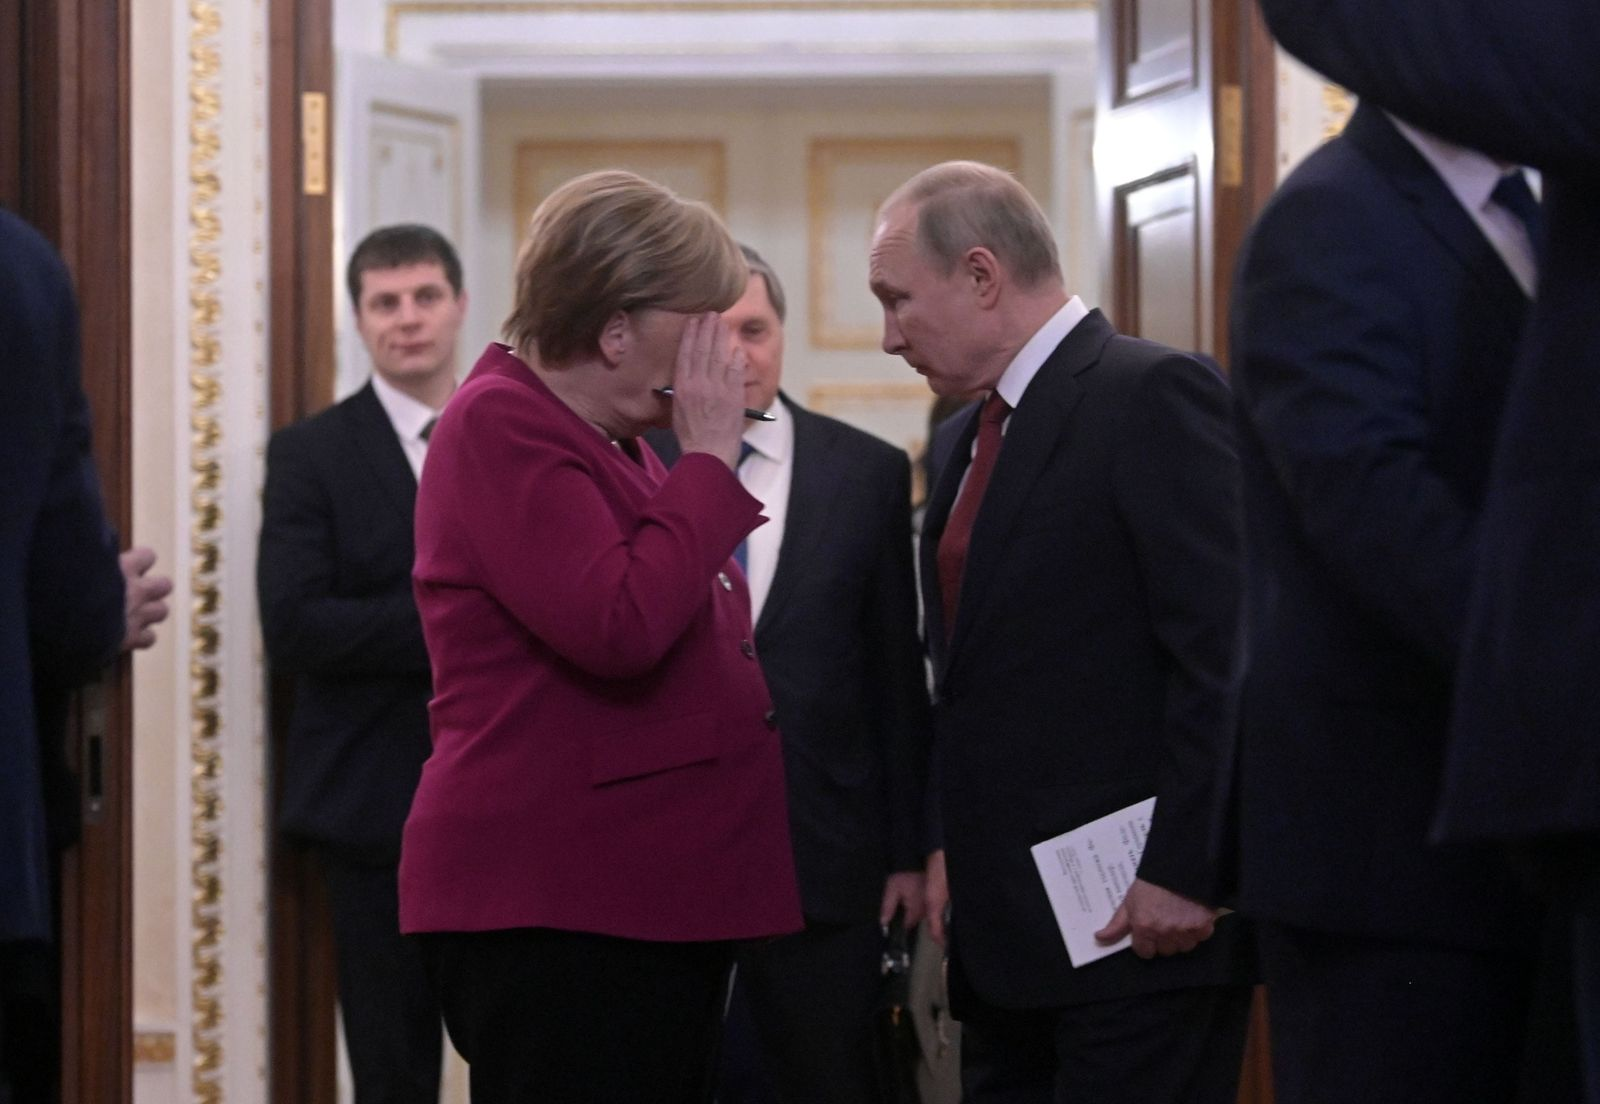 Russian President Vladimir Putin meets with German Chancellor Angela Merkel, Moscow, Russian Federation - 11 Jan 2020